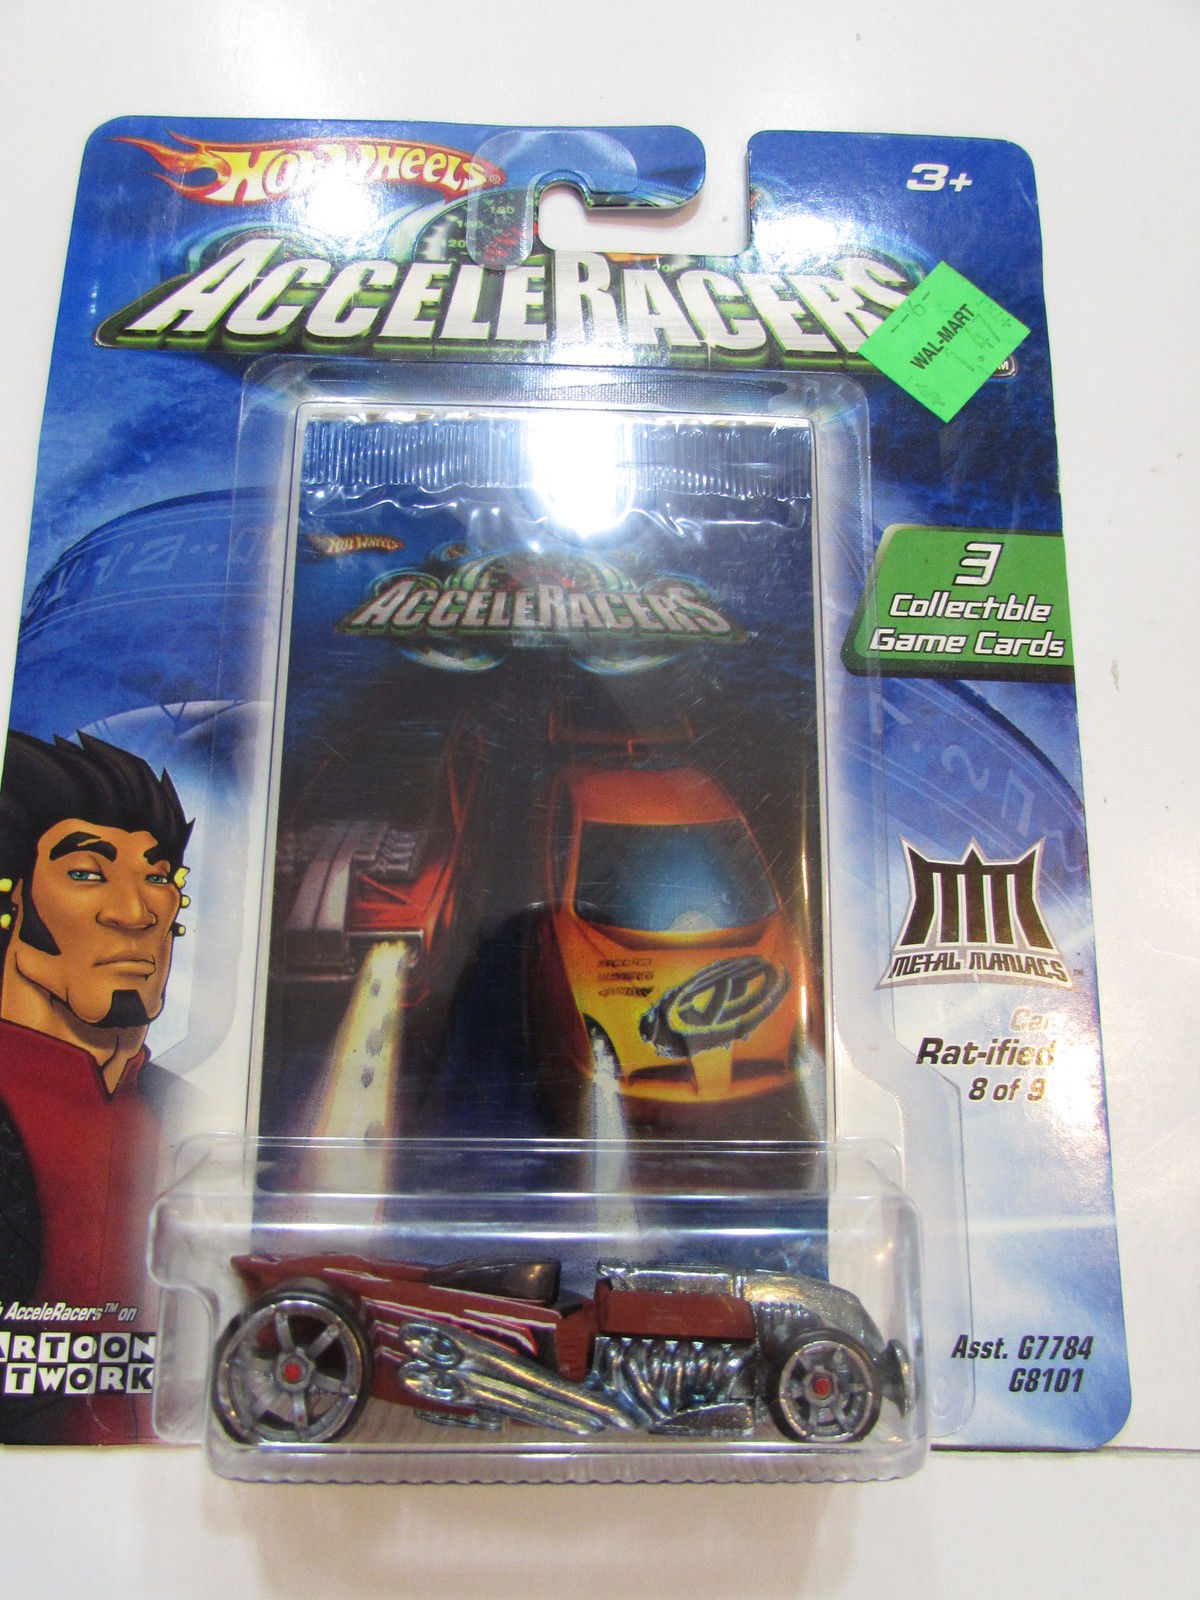 2004 HOT WHEELS ACCELERACERS RAT - IFIED #8/9 - 3 COLLECTIBLE GAME CARDS